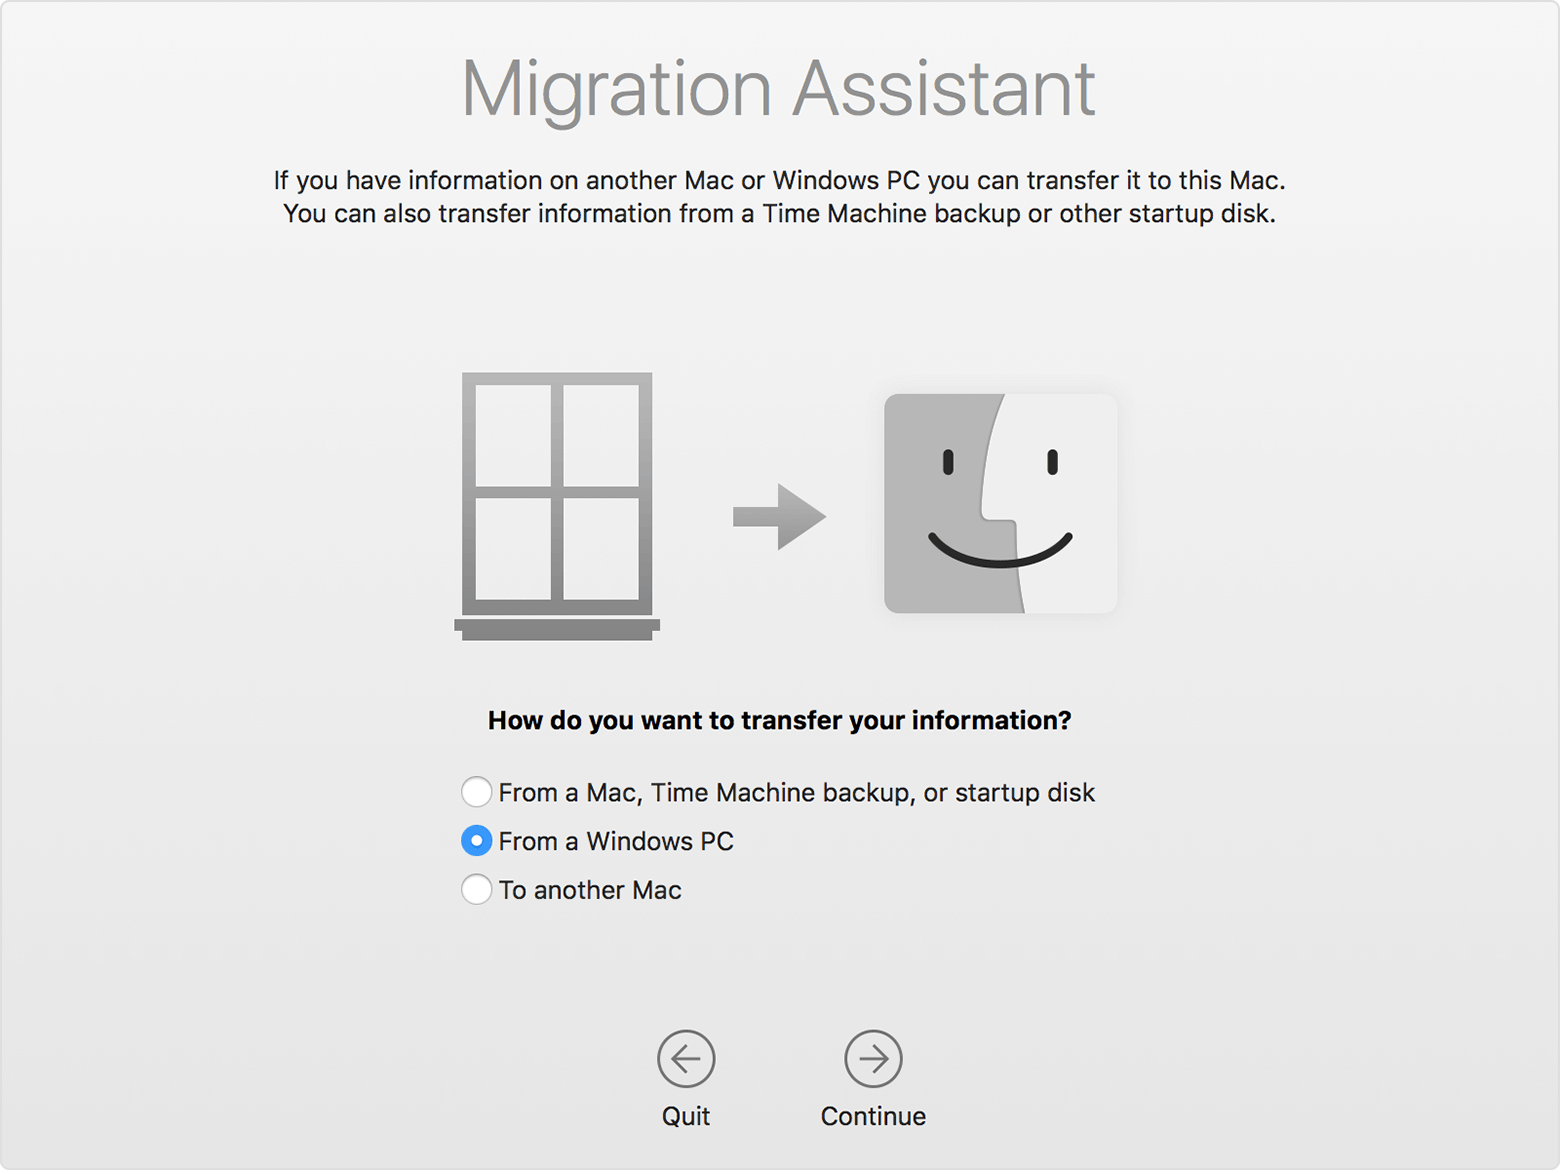 Choosing a transfer method in Migration Assistant